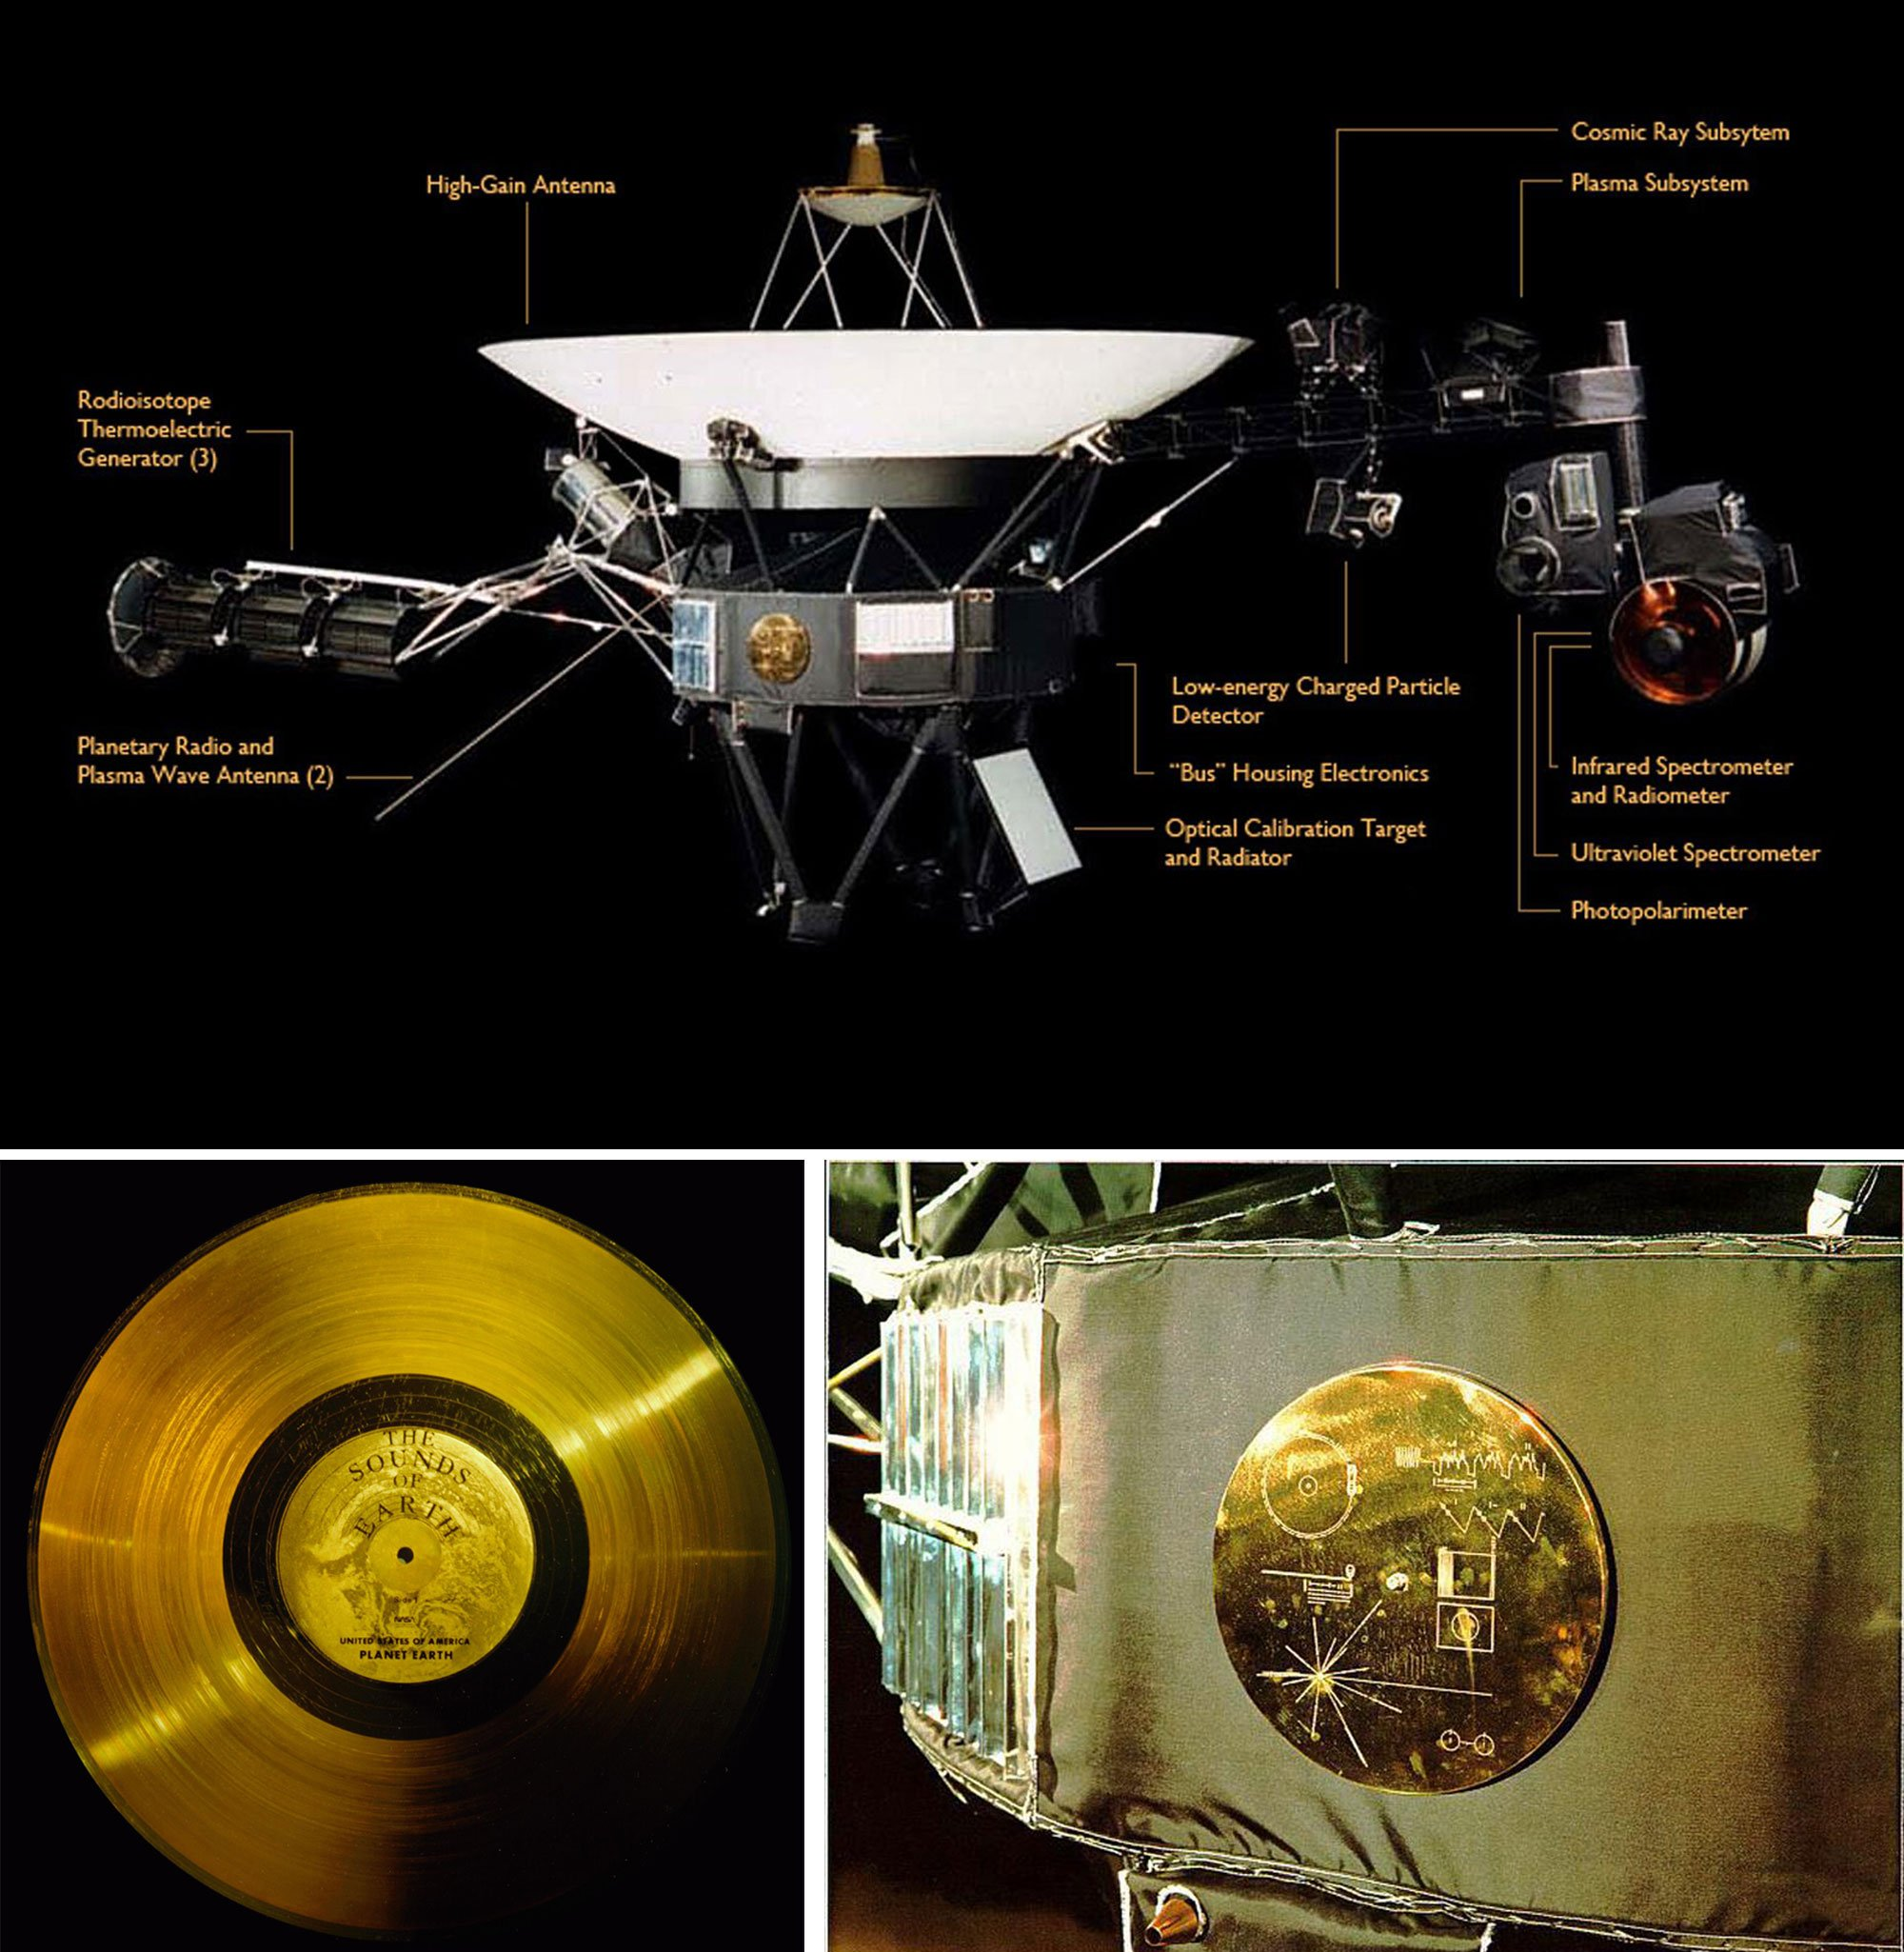 Voyager and the Golden Record